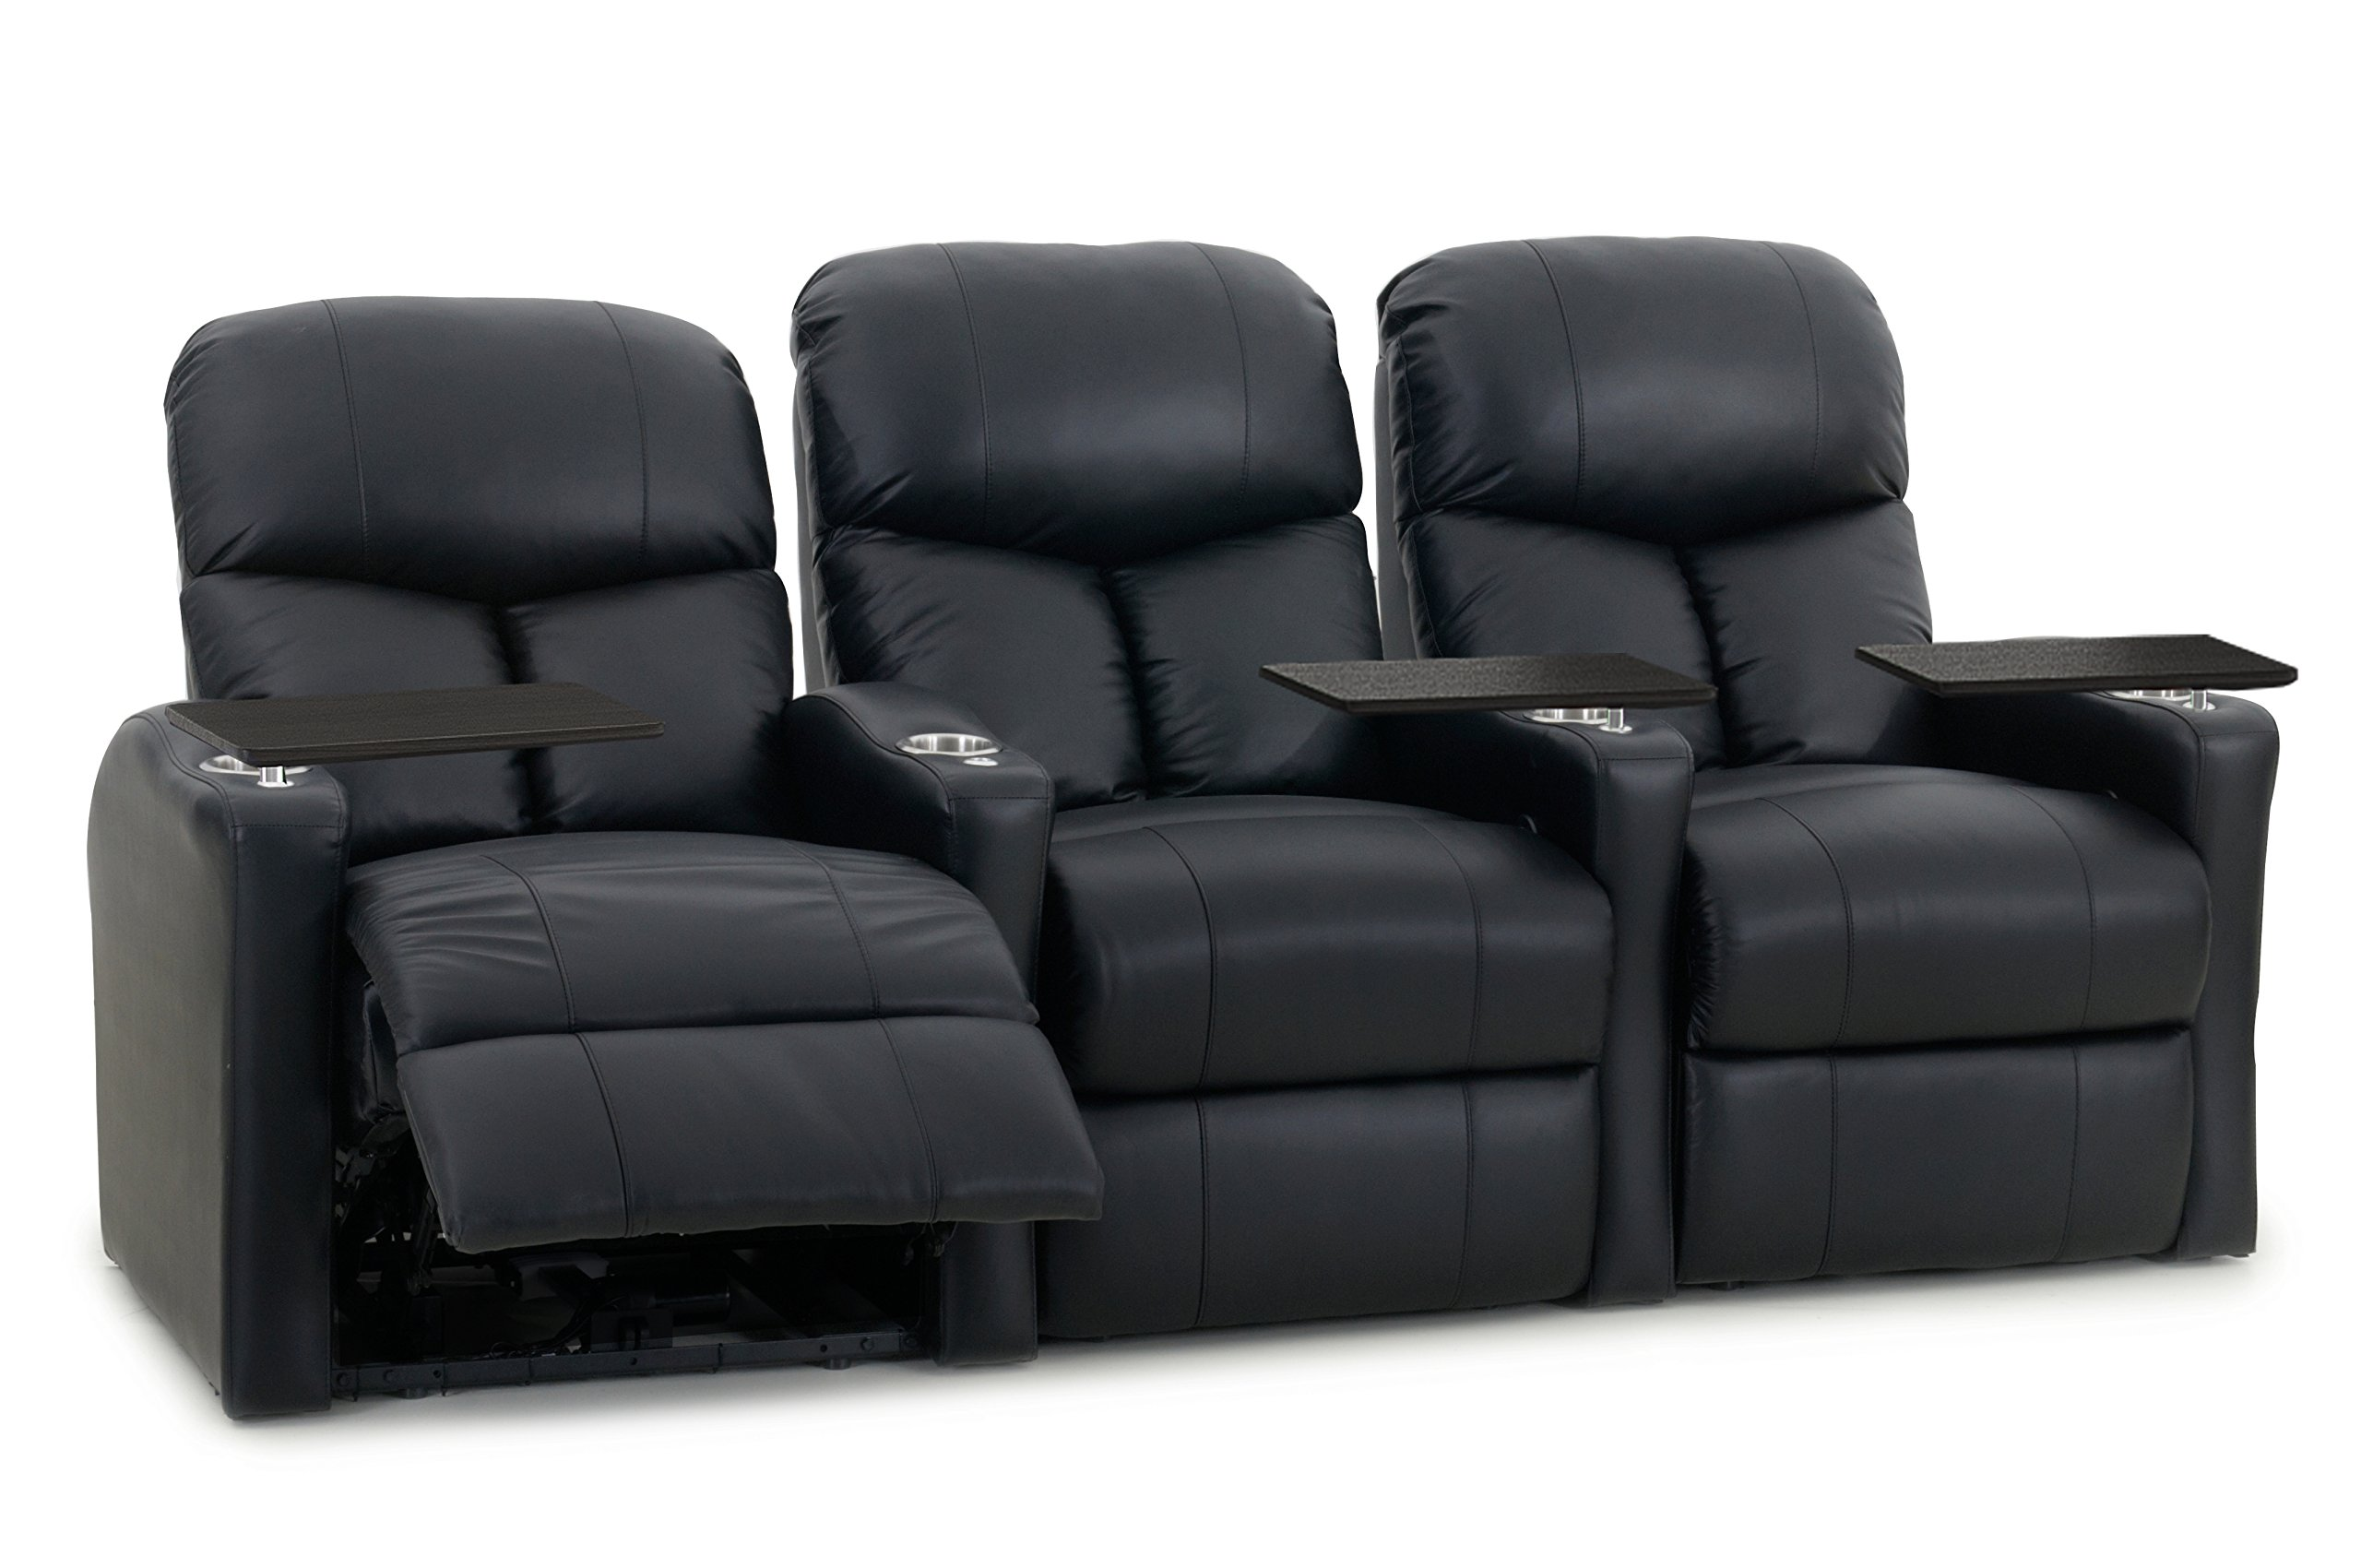 Octane Seating Octane Bolt XS400 Motorized Leather Home Theater Recliner Set (Row of 3) by Octane Seating